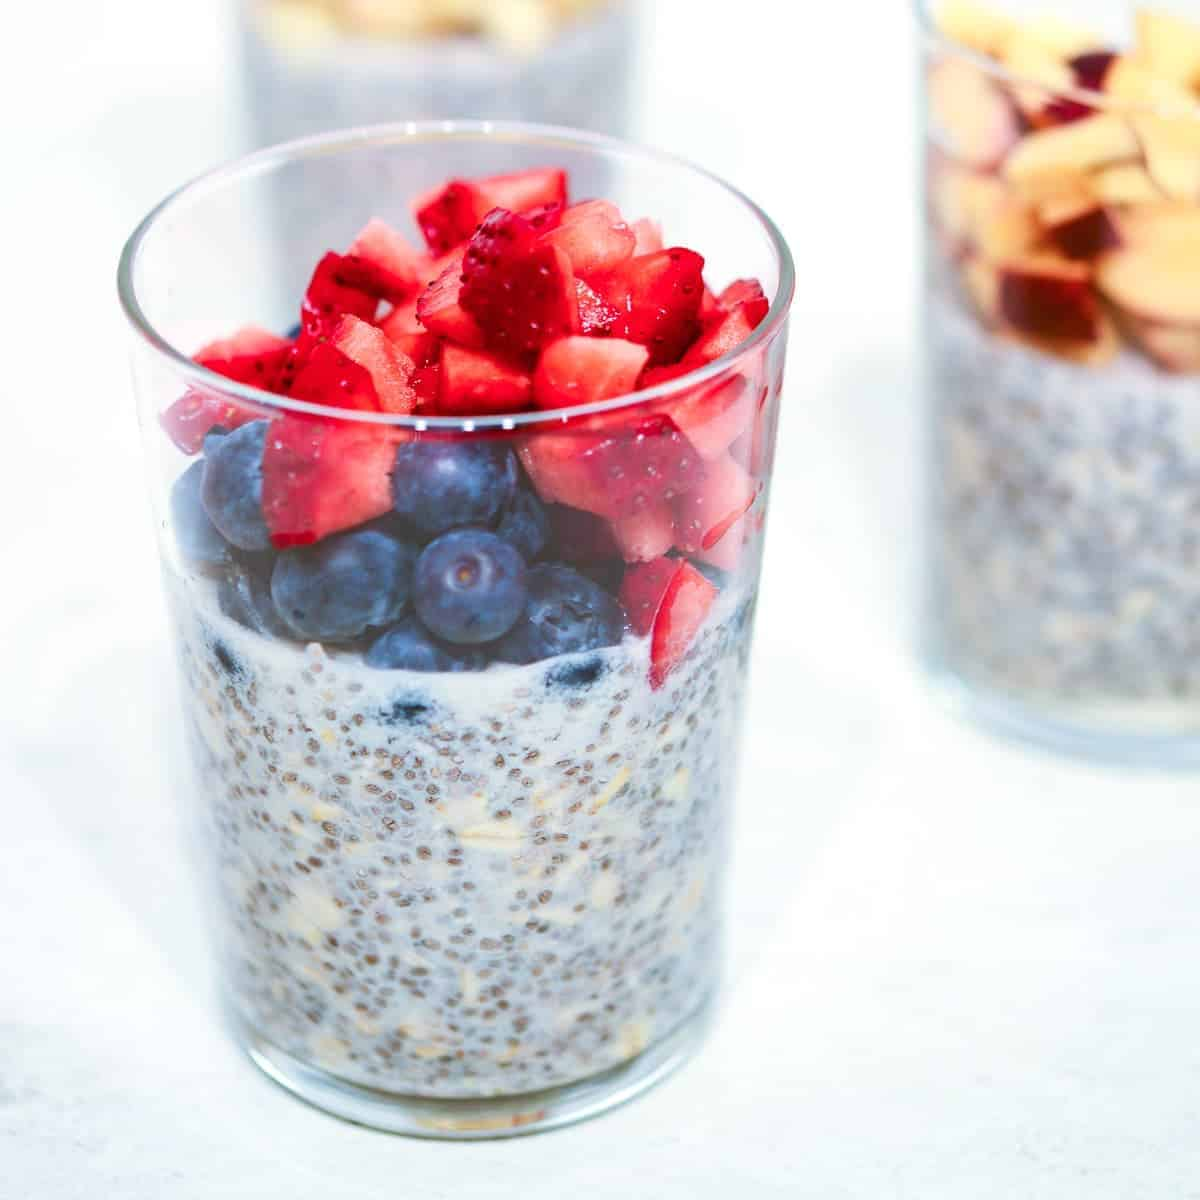 healthy overnight oats recipe with blueberries and strawberries. recipe by foodology geek.